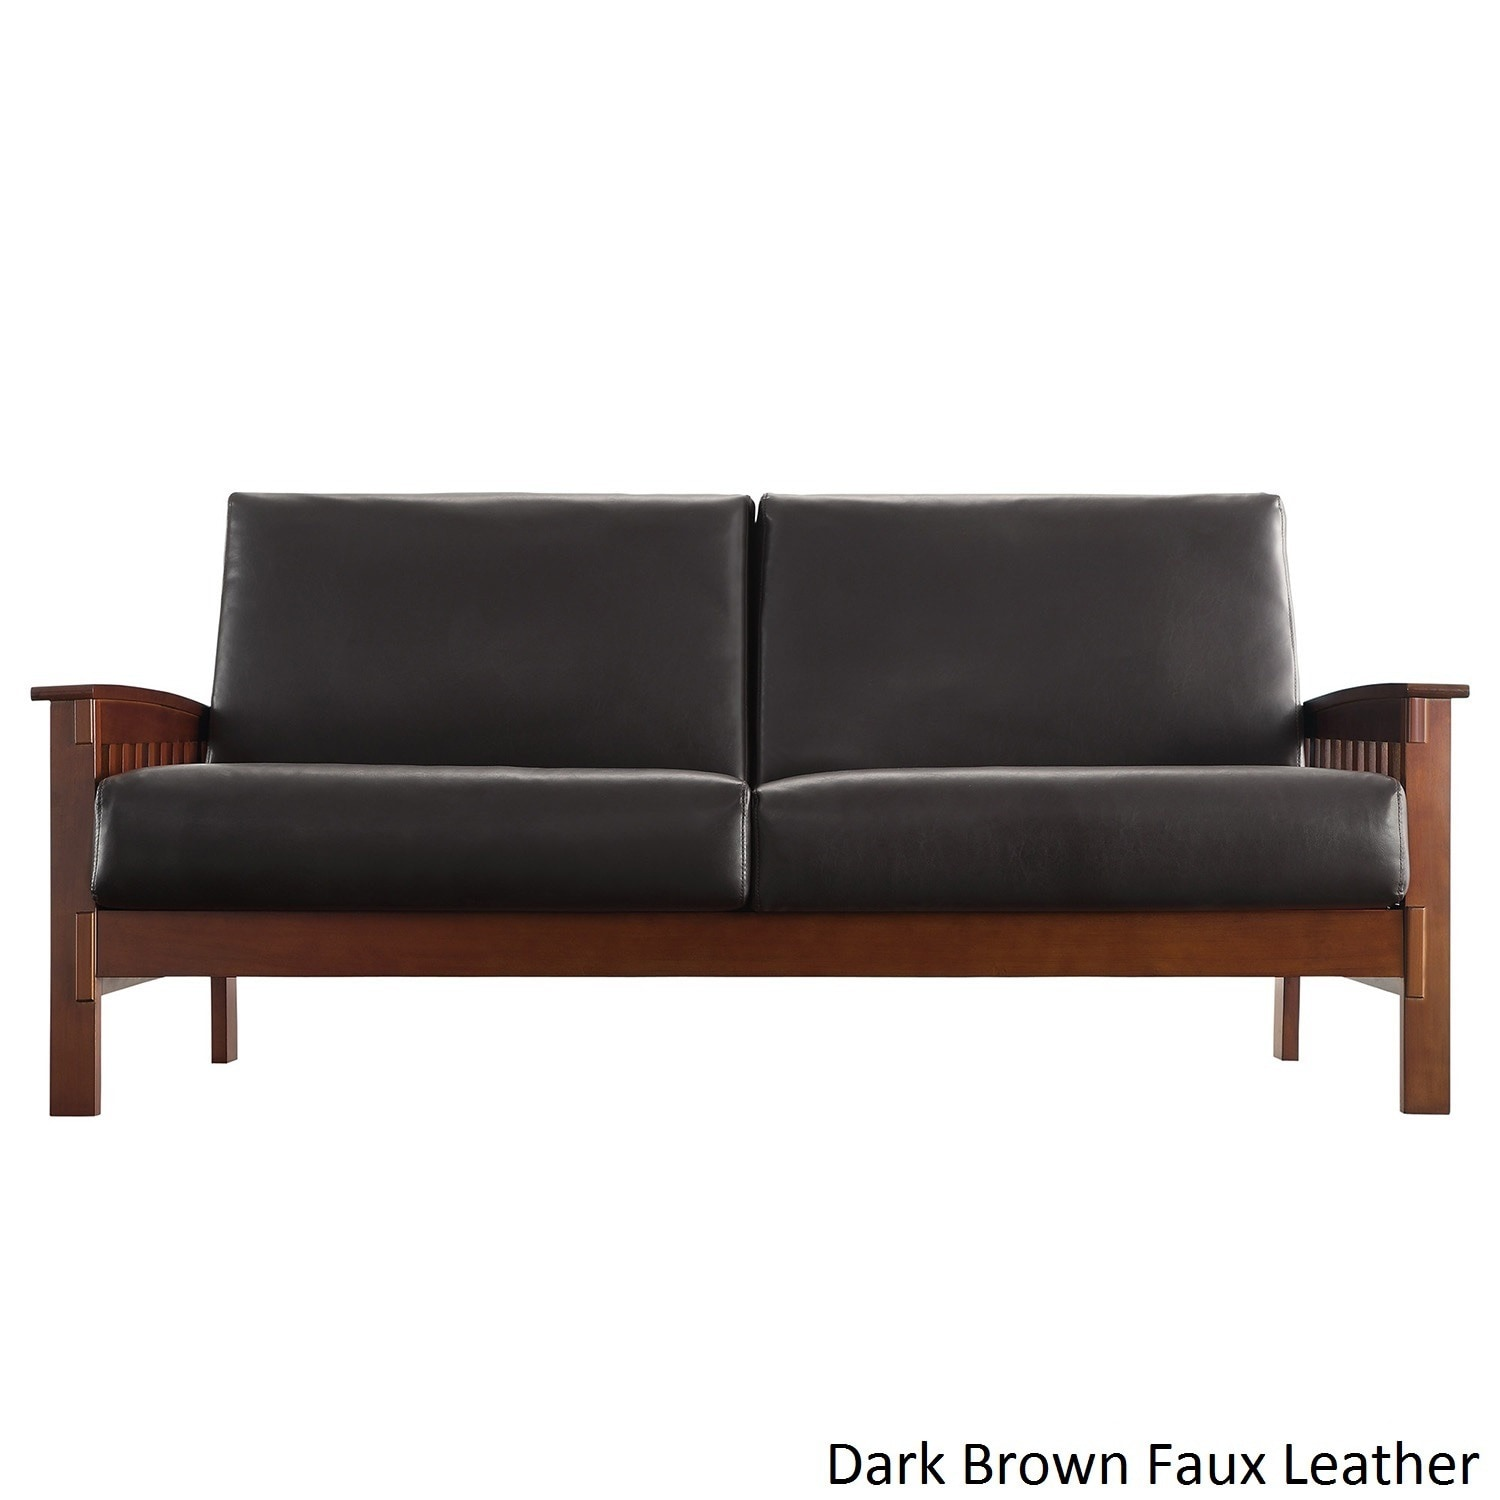 Hills Mission Style Oak Sofa By Inspire Q Clic On Free Shipping Today 3911910